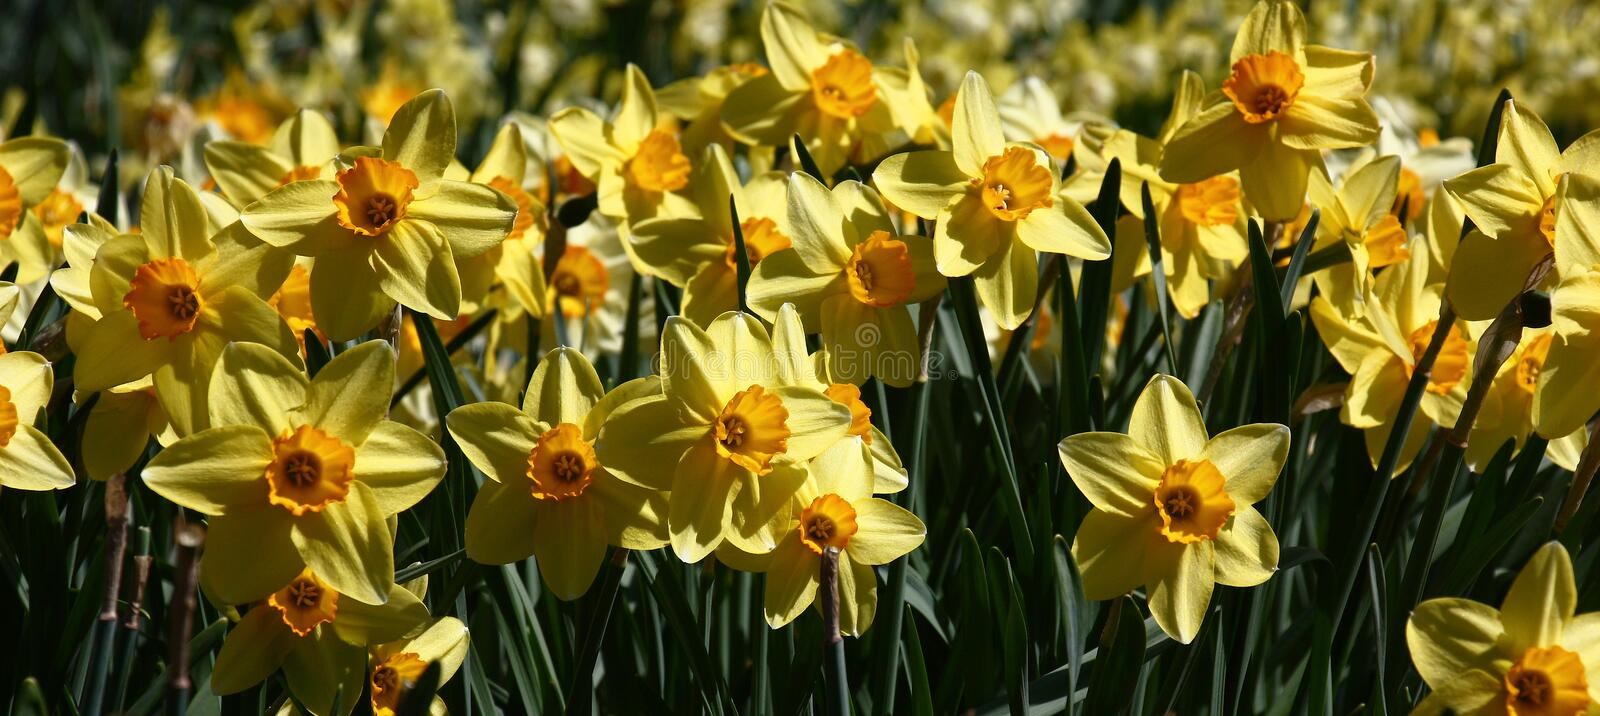 Panorama with narcissuses. Abundance of the blossoming narcissuses with yellow petals and an orange crown at bright solar lighting stock images